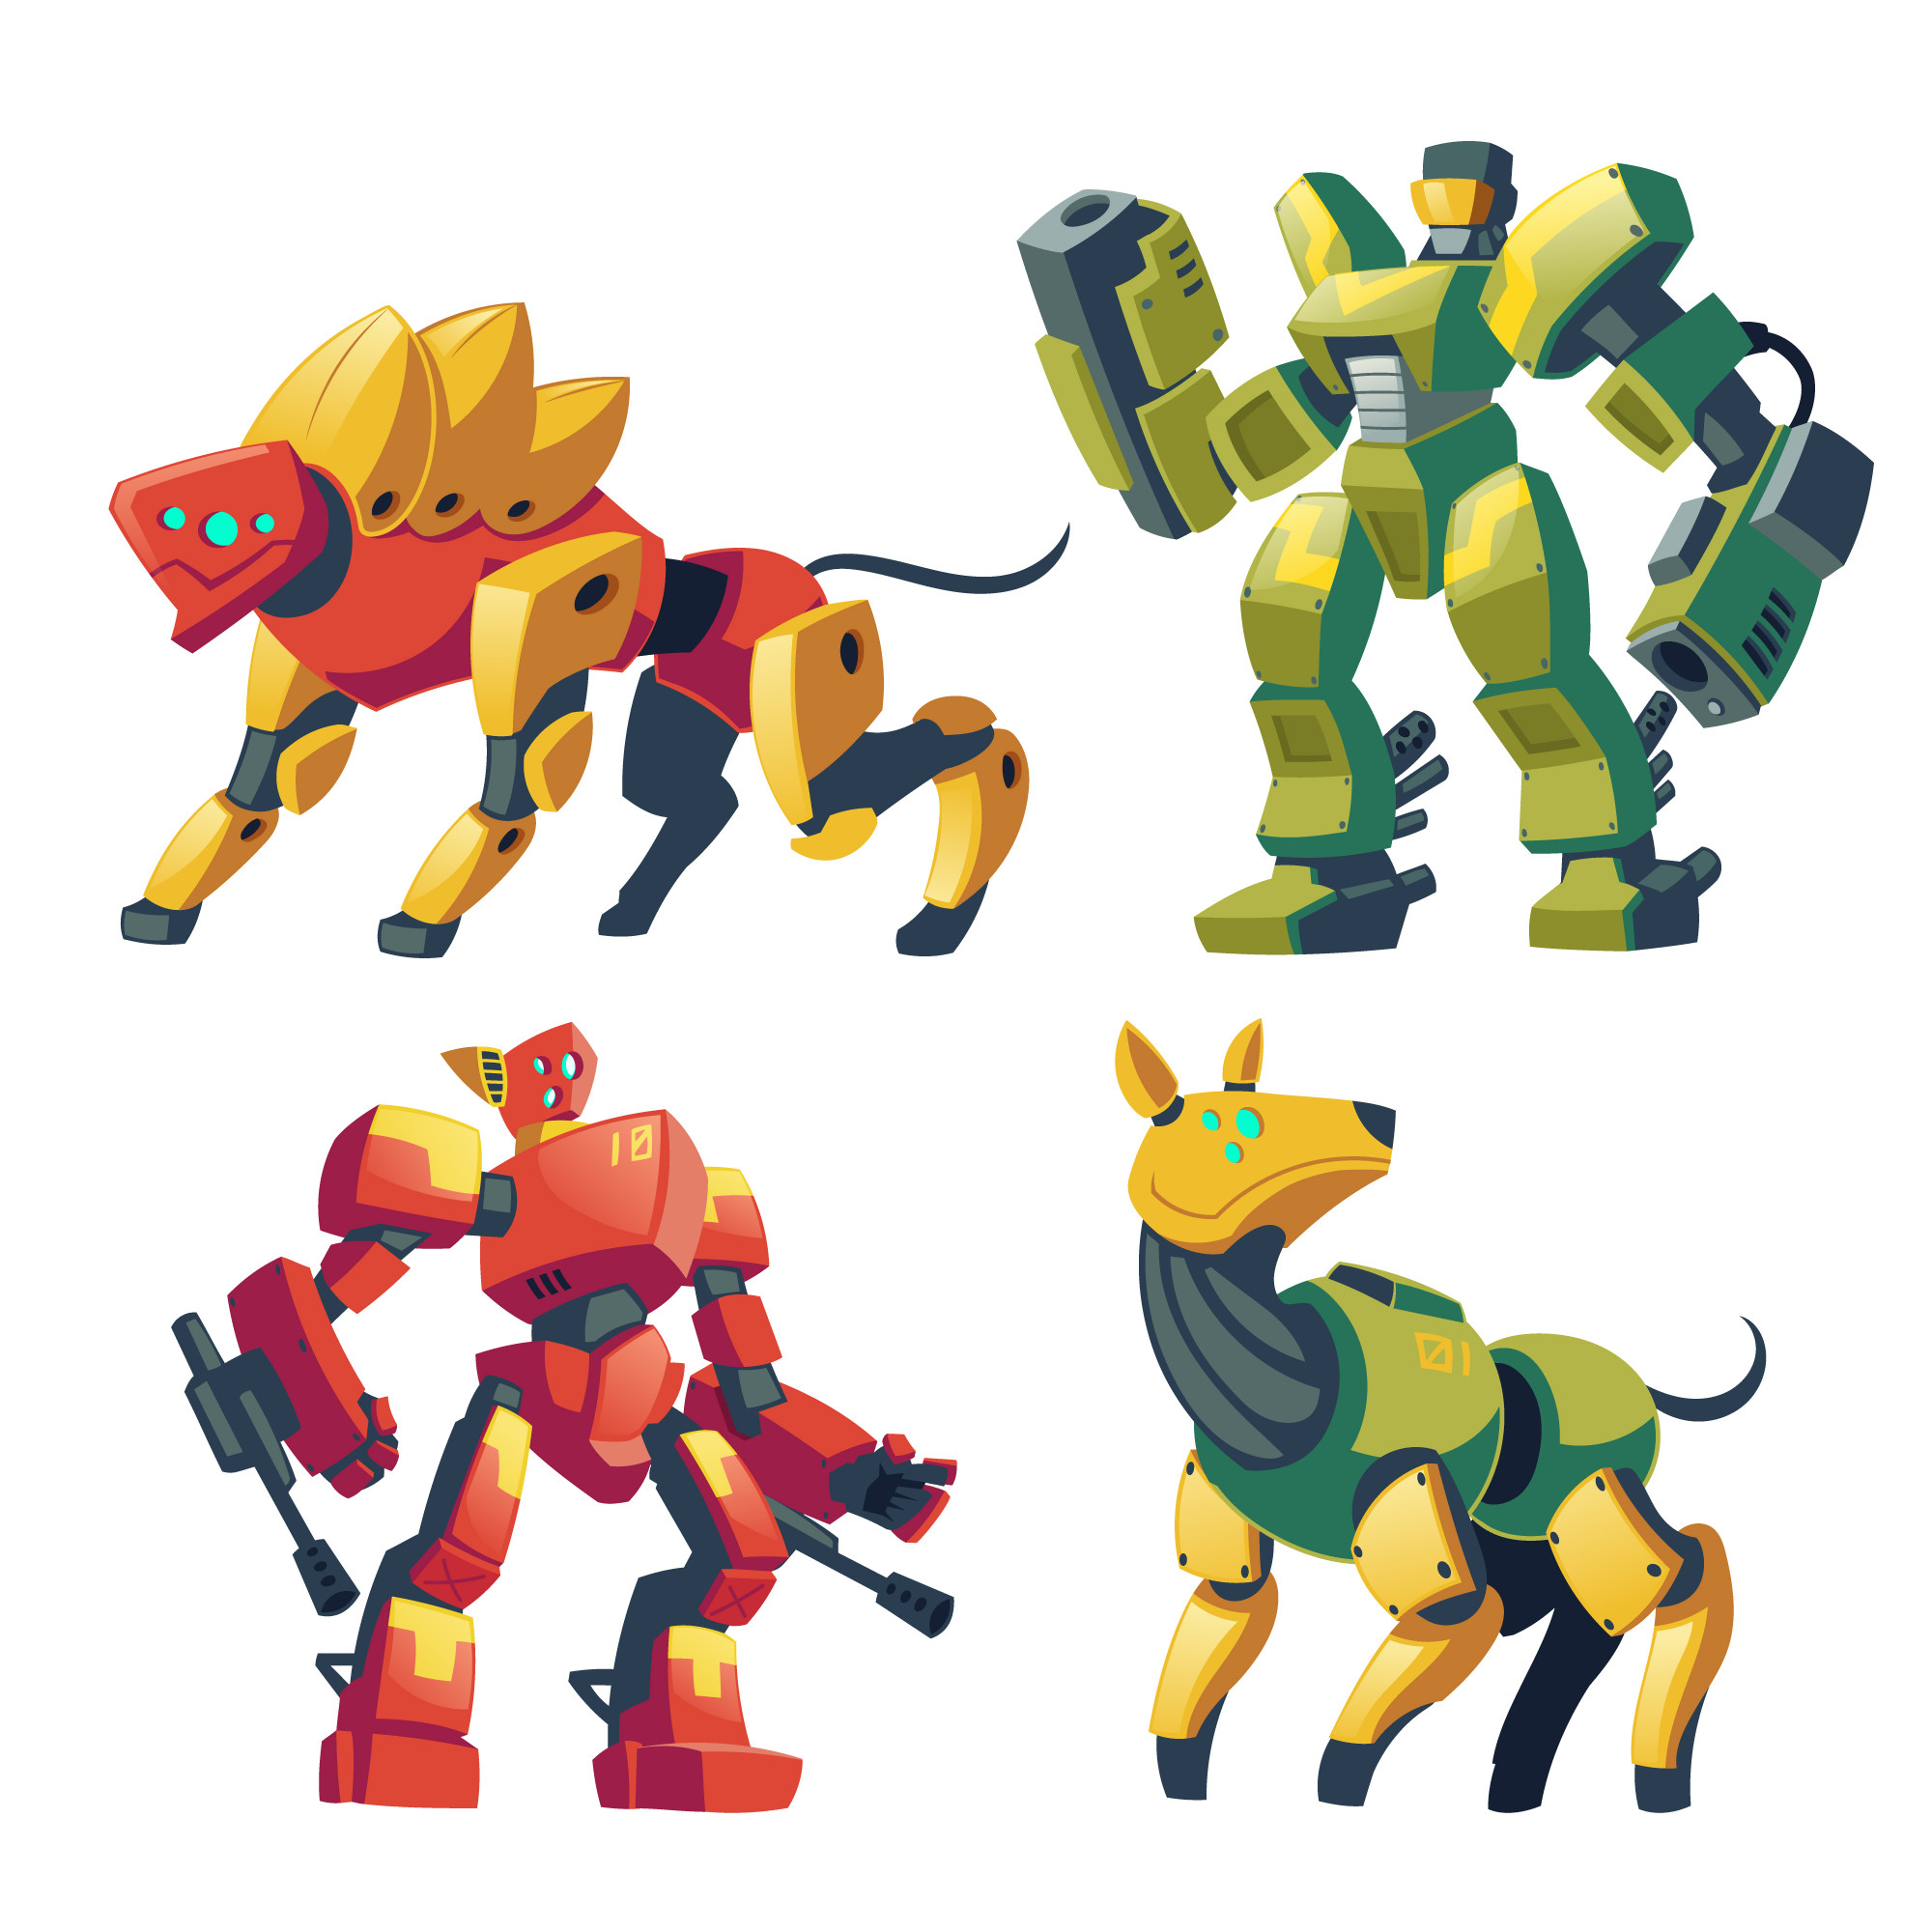 Cartoon combat robots and mechanical dogs. Battle androids with artificial intelligence